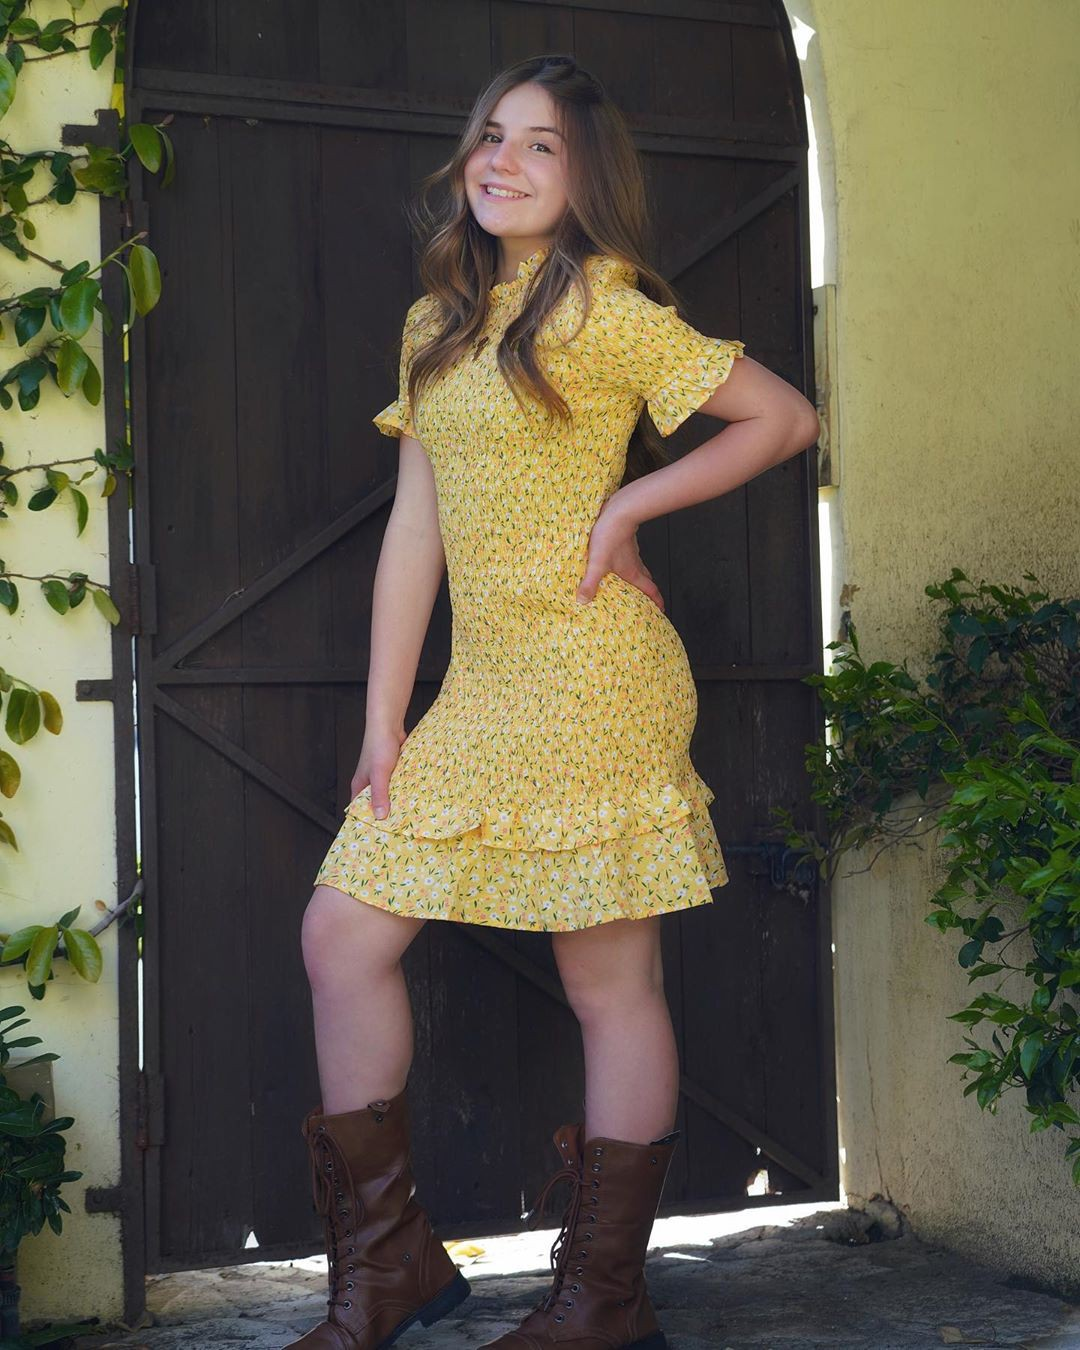 yellow dresses ideas with dress, woman thighs, legs picture